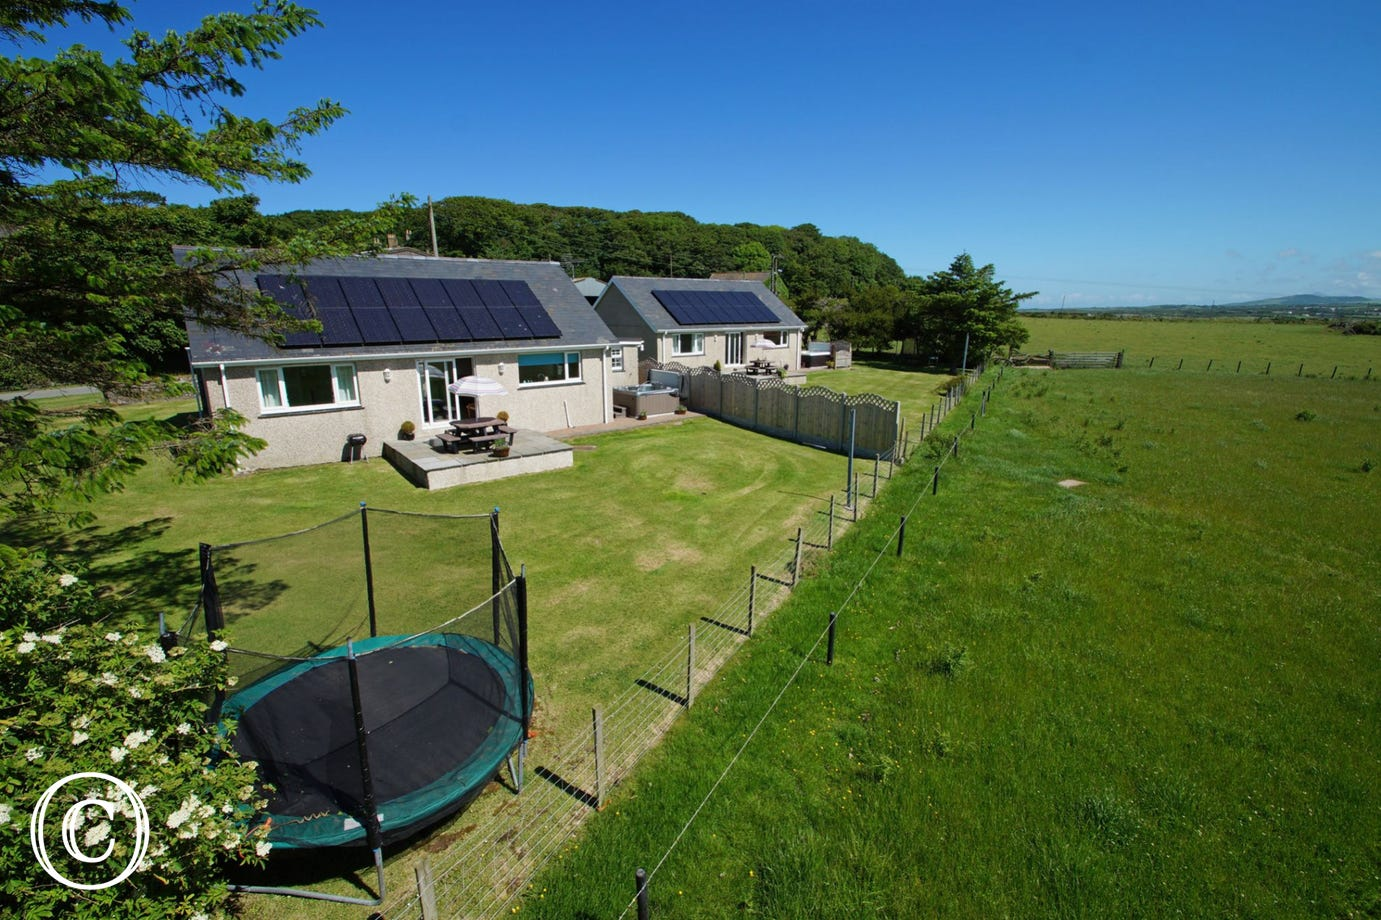 Min y Môr (nearest) is one of two 5 star holiday cottages on site, each with its own enclosed garden and hot tub - ideal for extended family or friends